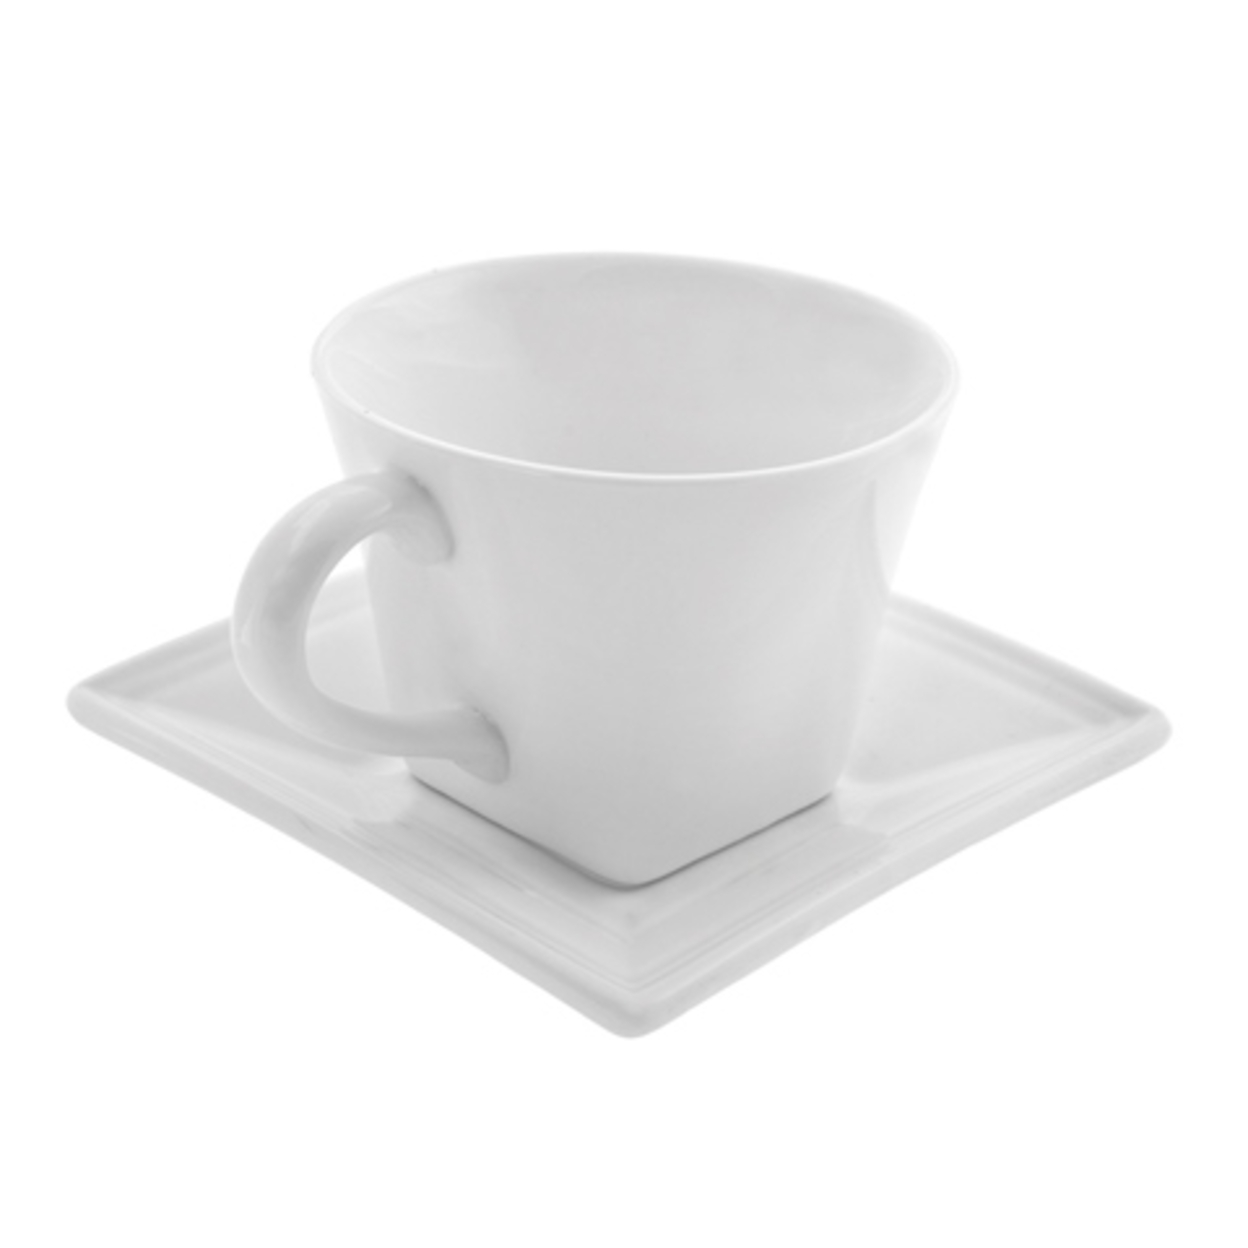 Ten Strawberry Street Whittier- 8 Oz Flared Square Cup And Saucer- Set of 6 596e29292a00e47d7b0c30e9